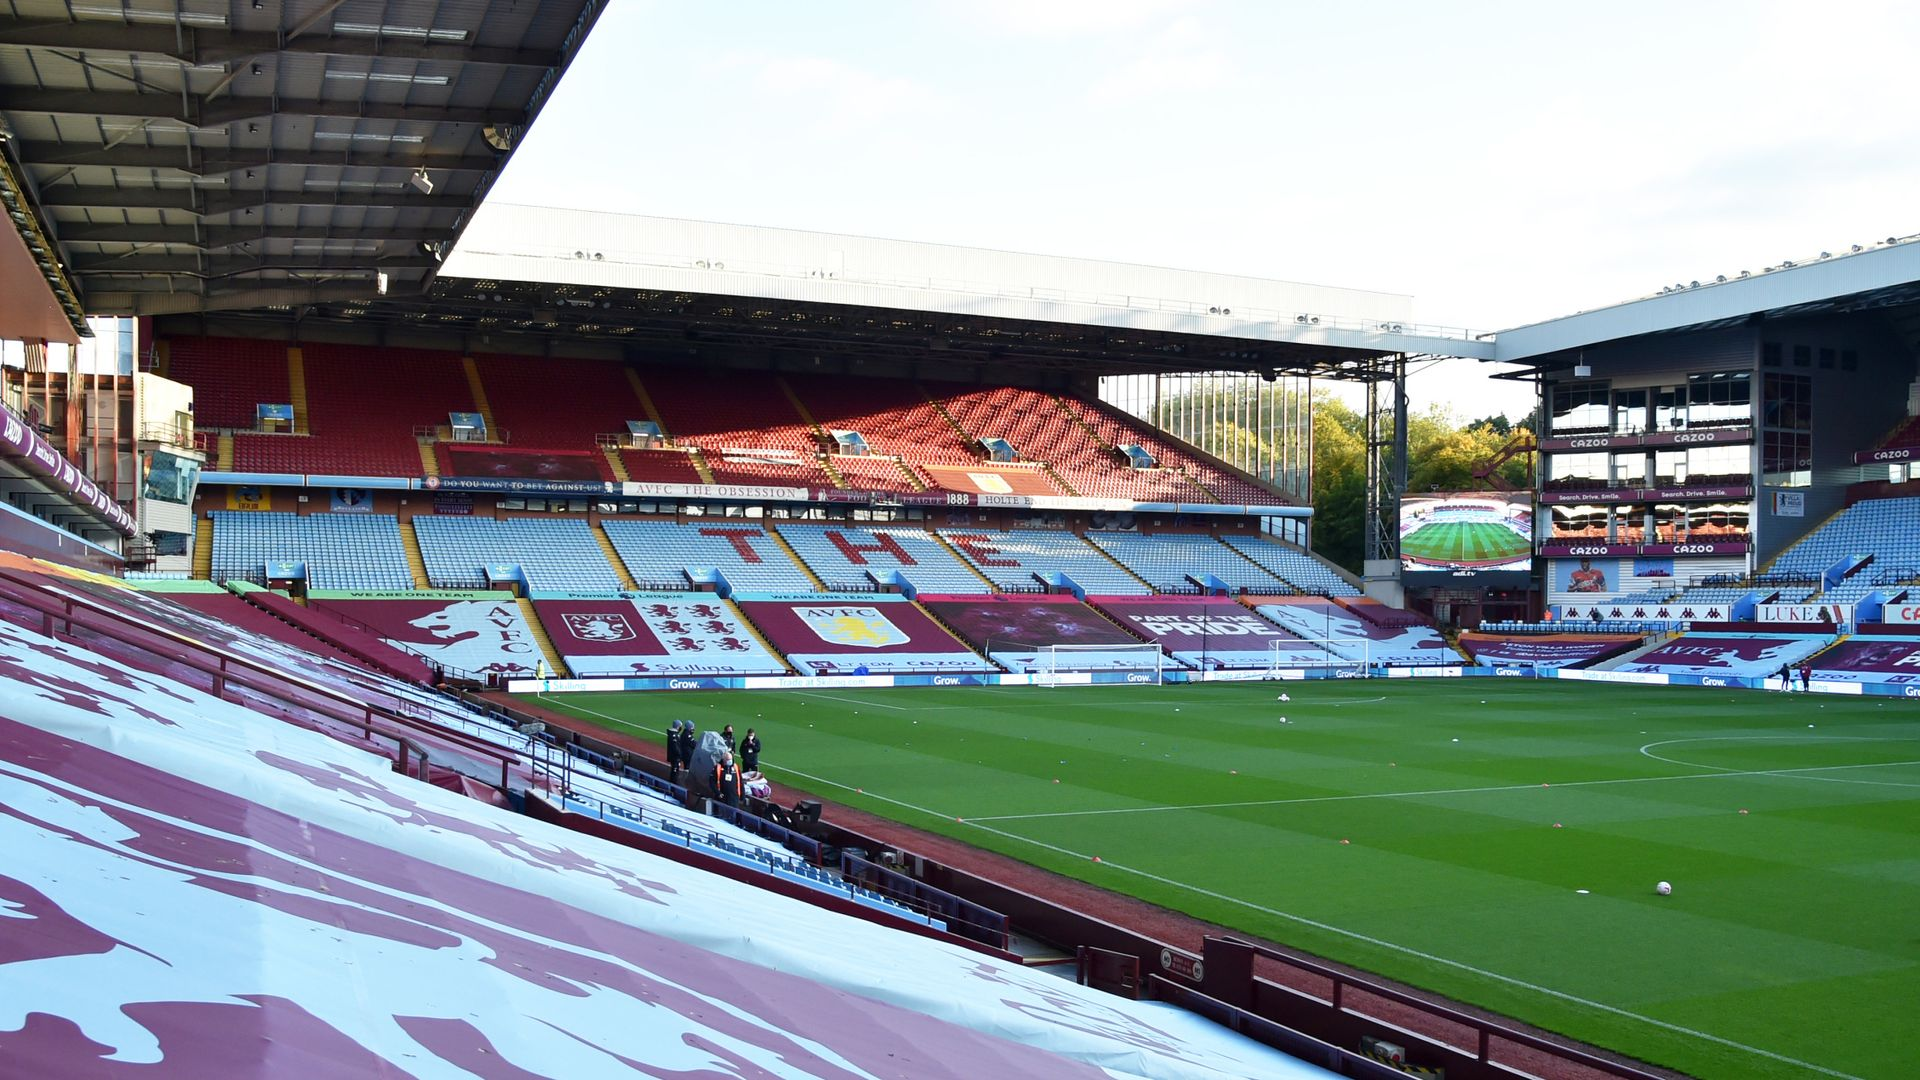 Villa fans top list of hate crimes reports